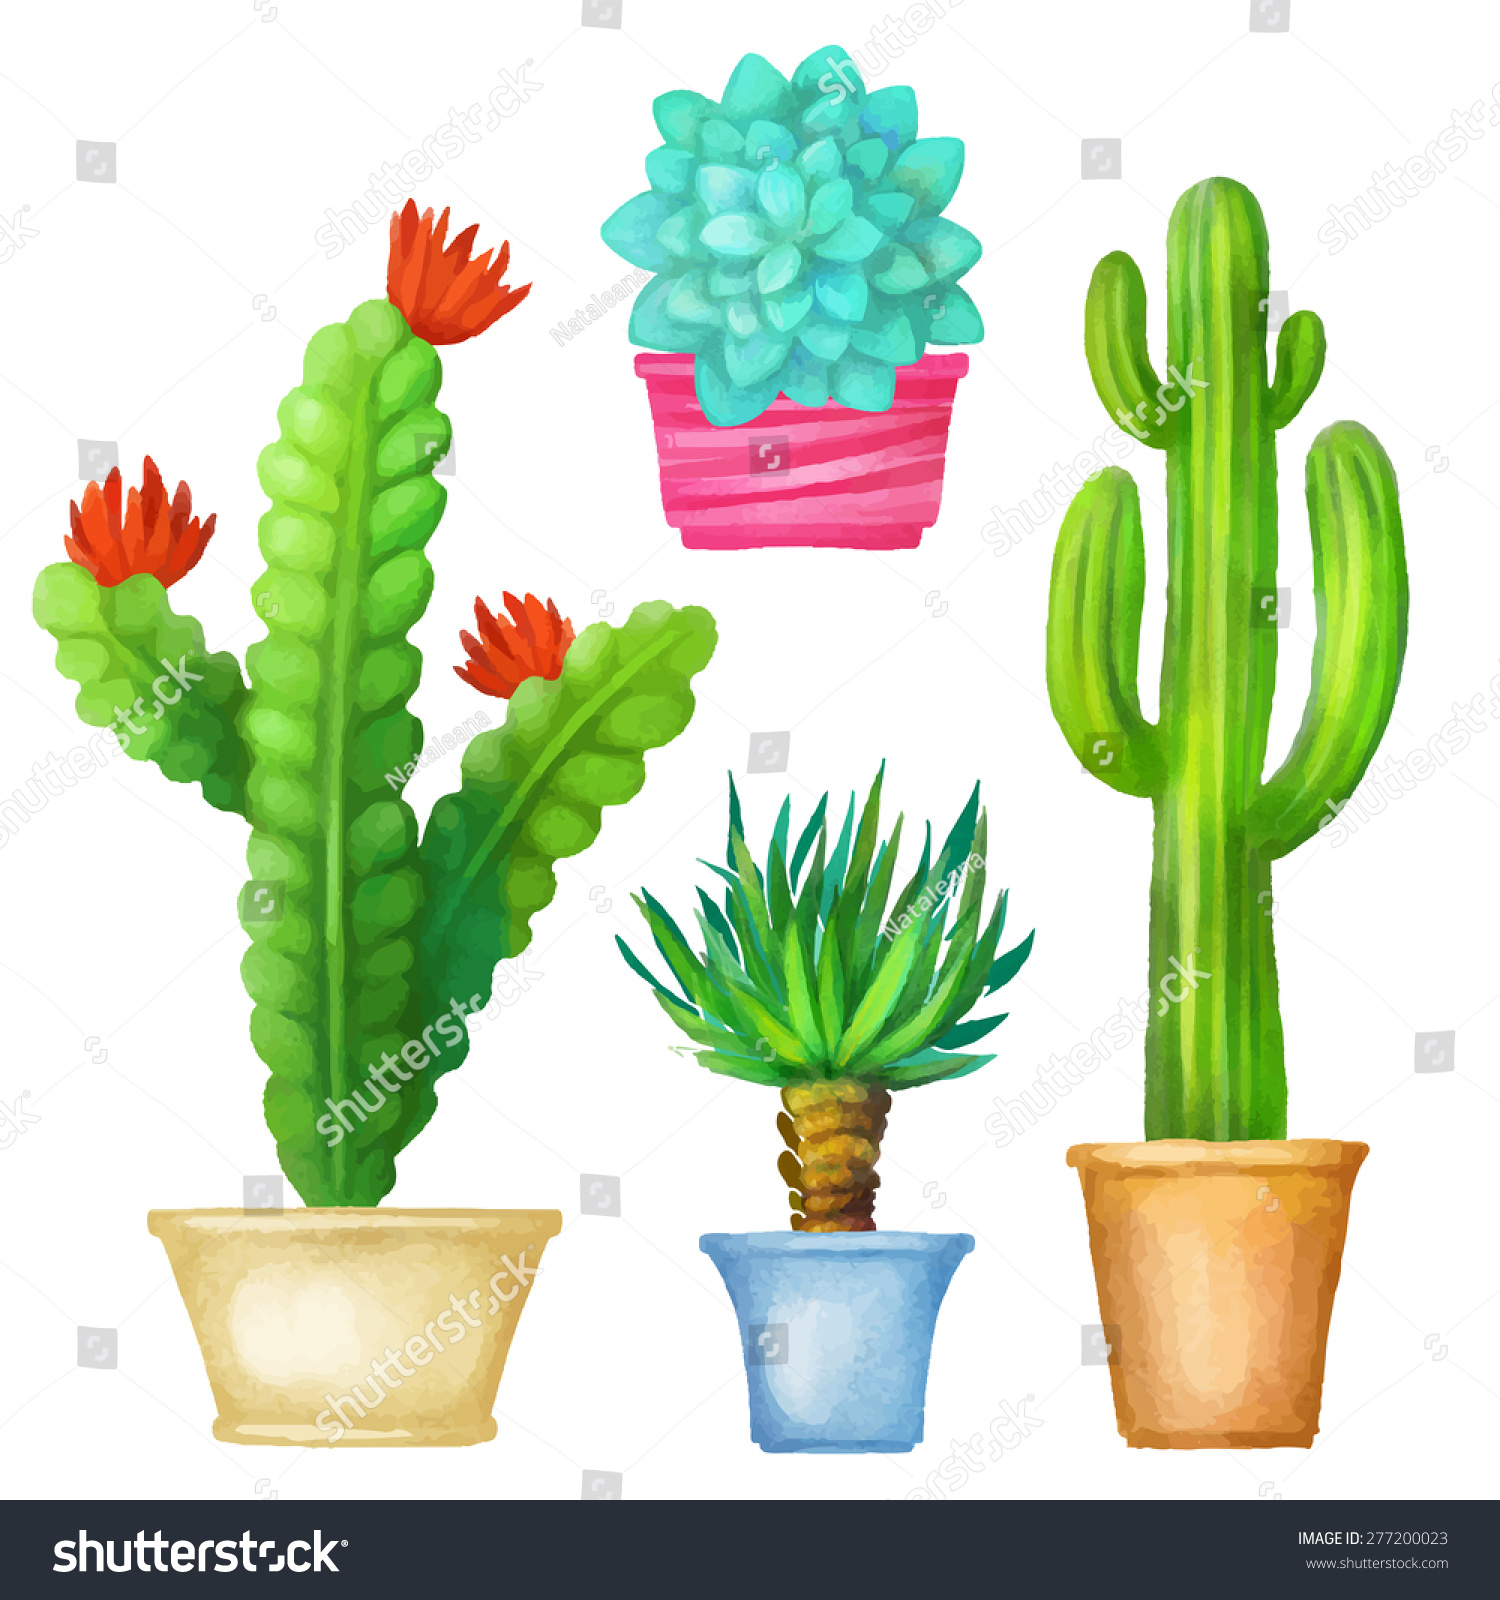 Cacti and succulents. Home Potted Flower 19